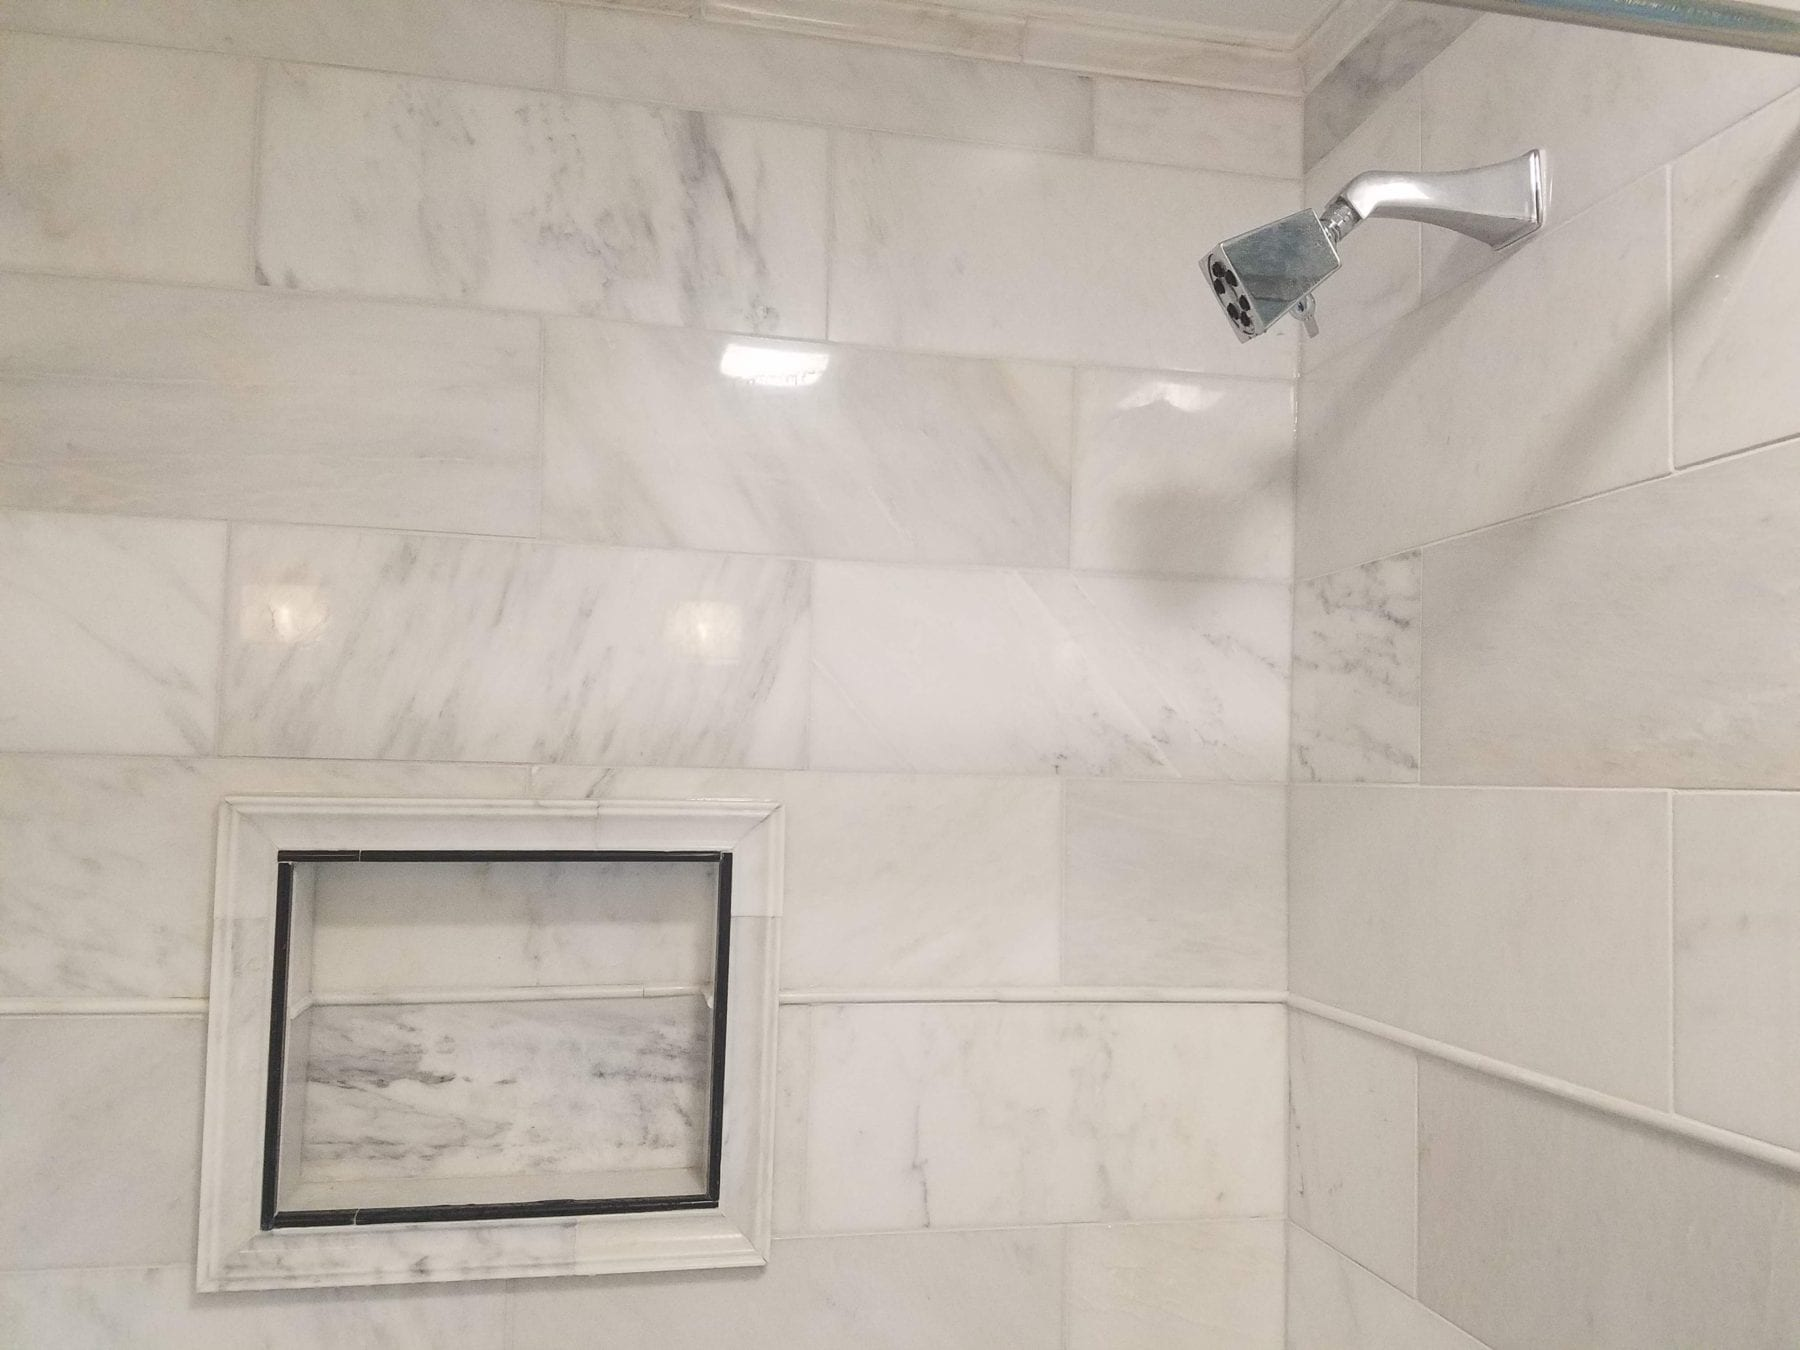 Bathroom Remodeling in Baltimore MD TradeMark Construction